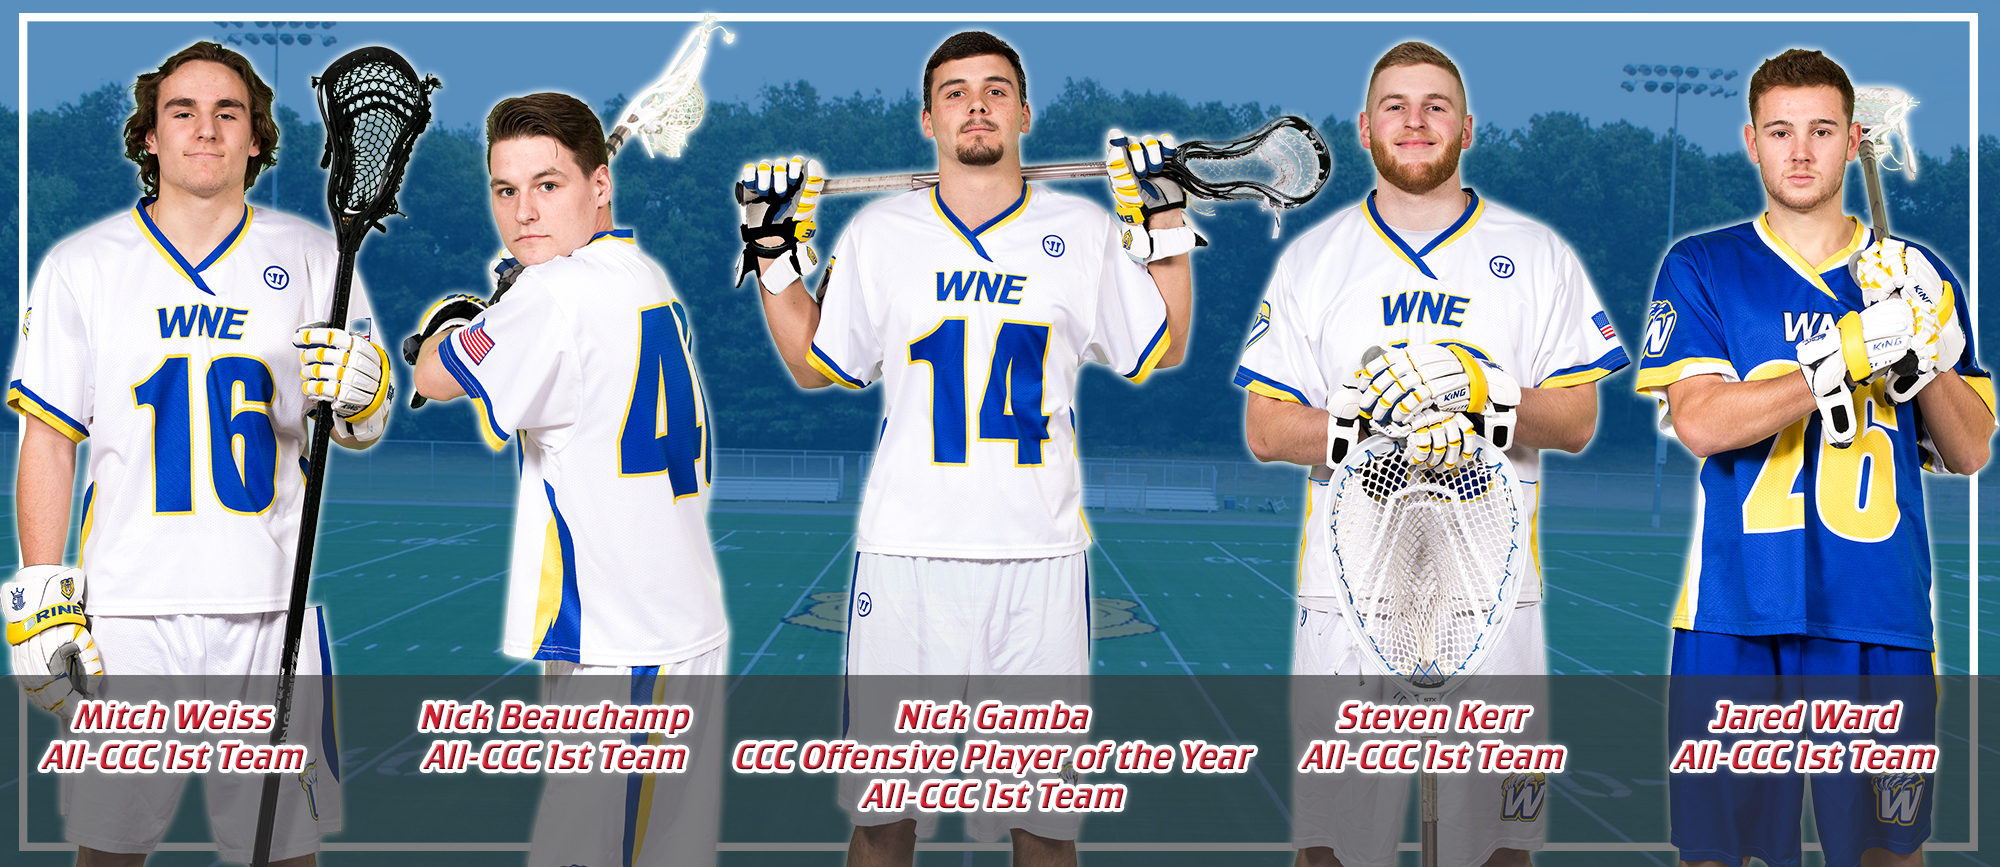 Gamba Highlights 12 All-CCC Selections for Western New England